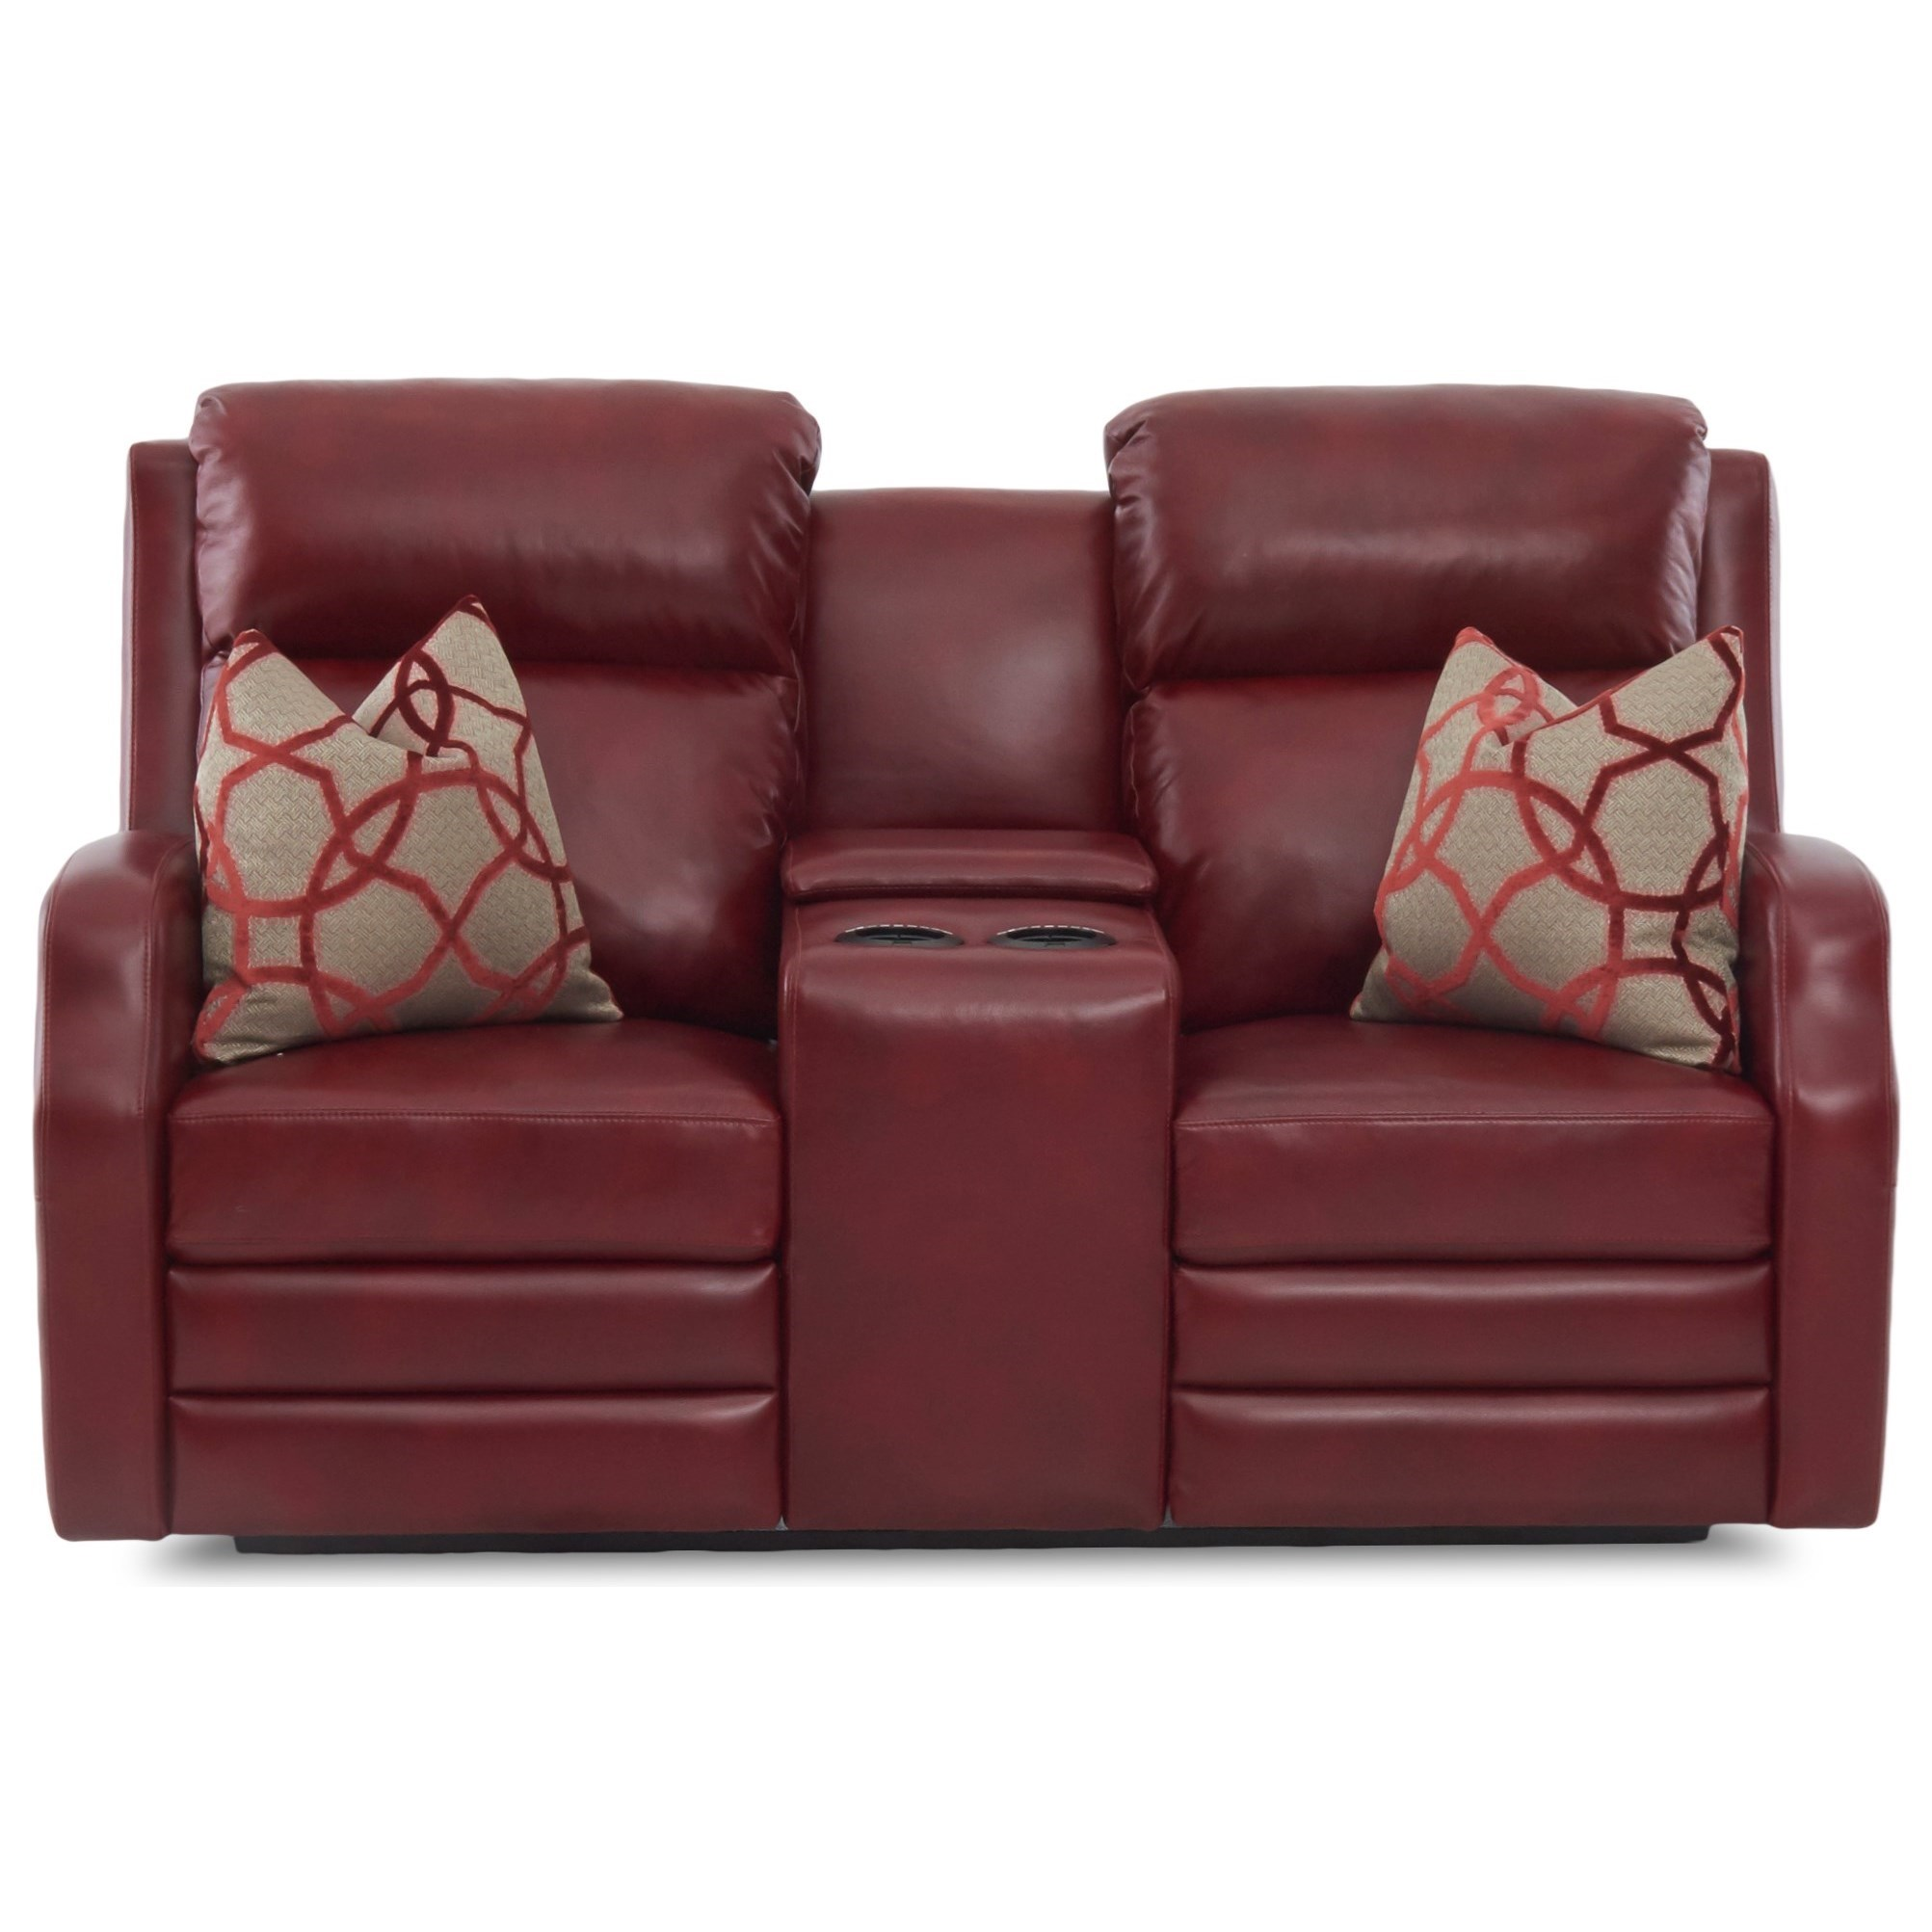 Reclining Loveseat with Cupholder Storage Console and Toss Pillows